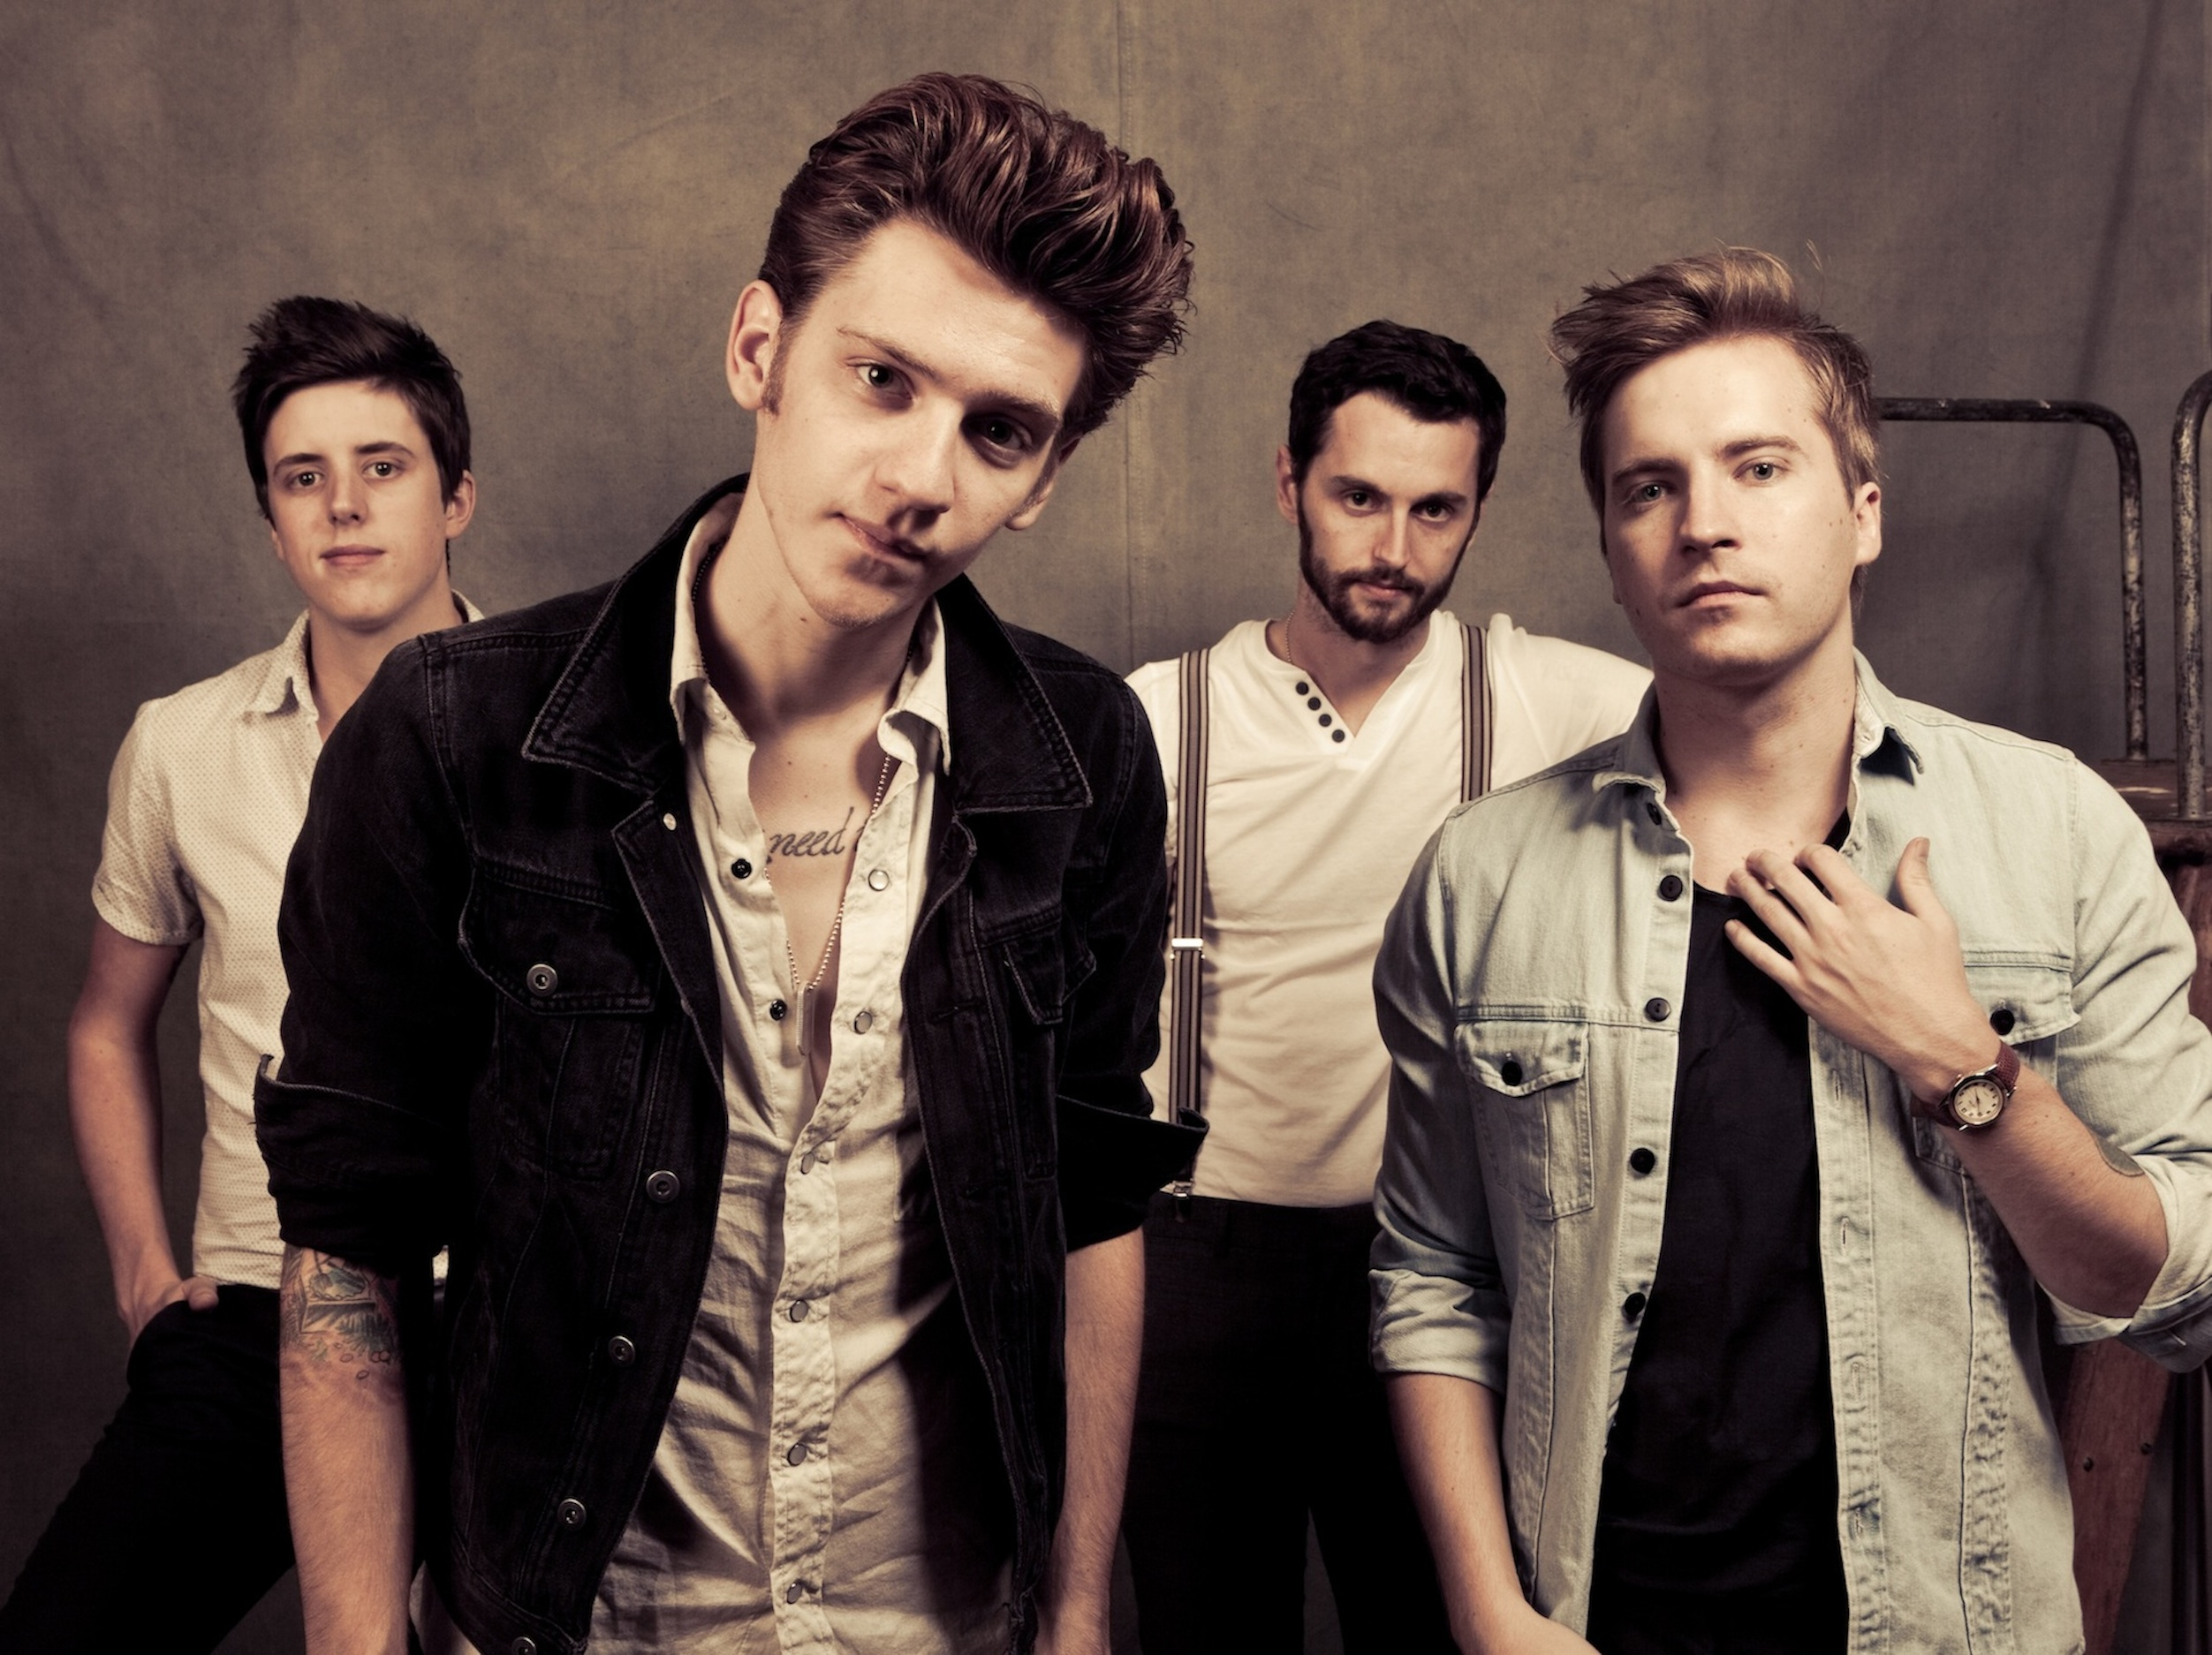 A Rocket To The Moon, The Ready Set, The Summer Set, The Dangerous Summer Sidewaves announced